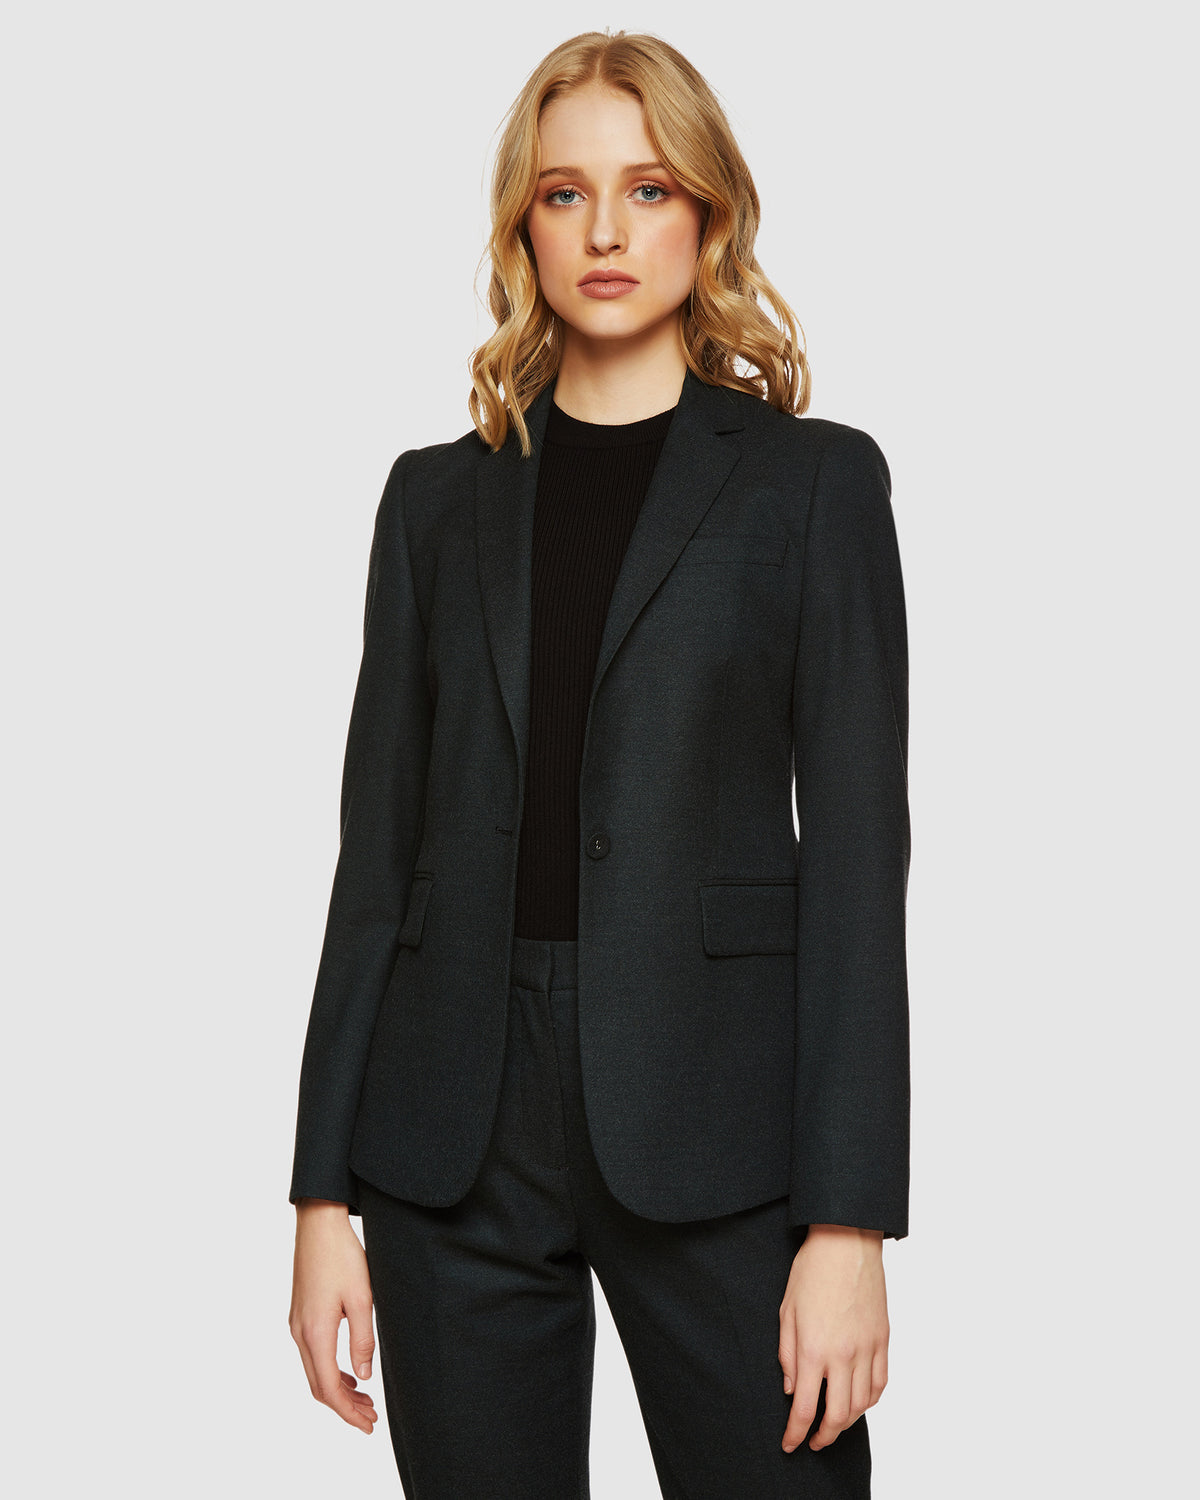 ALEXA ECO SUIT JACKET FOREST